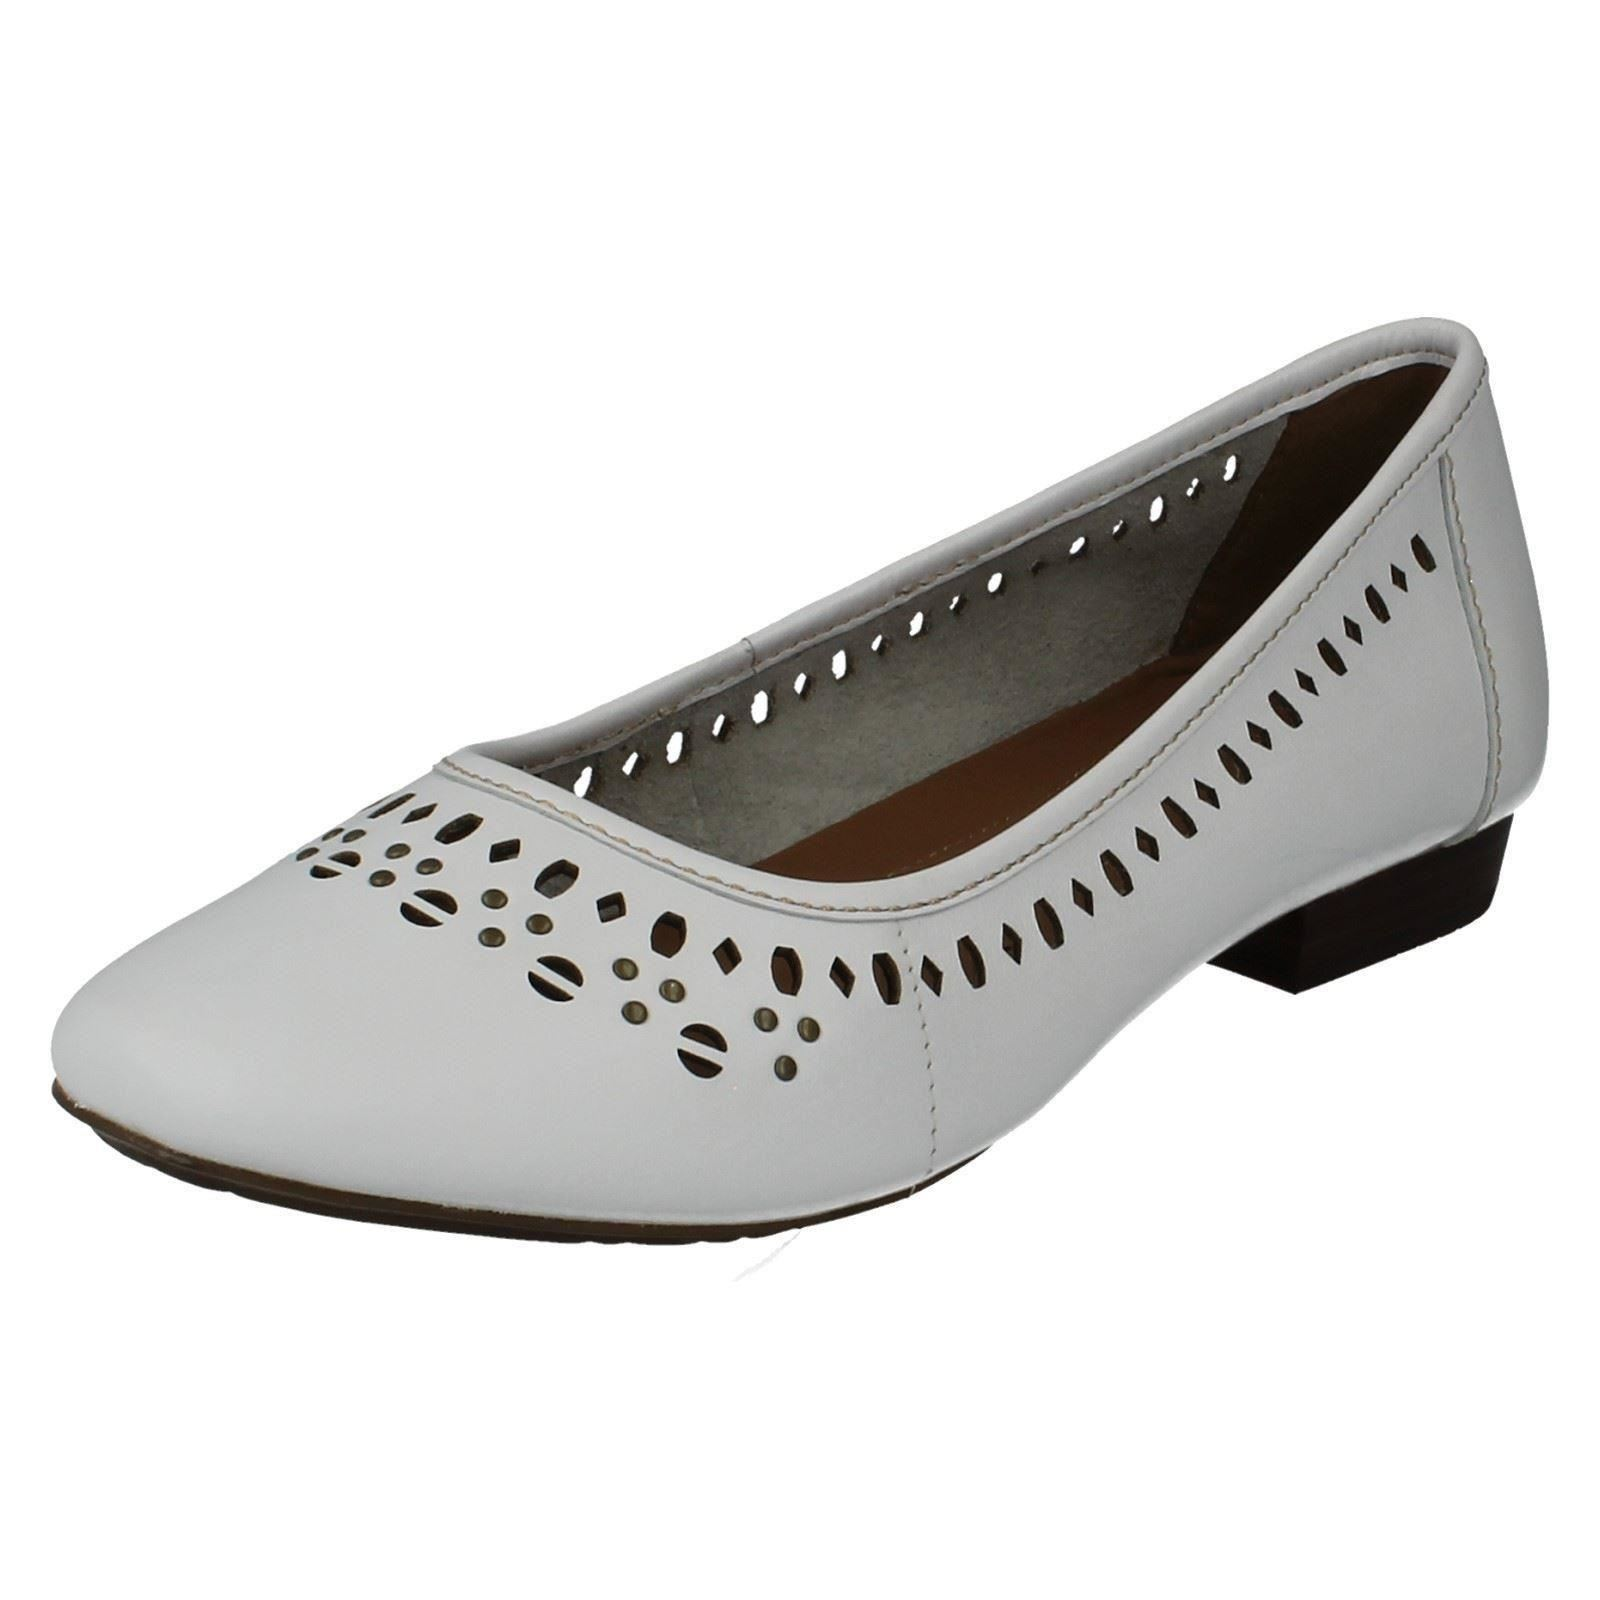 Ladies Clarks Flats Henderson Hot; Picture 2 of 10 ...